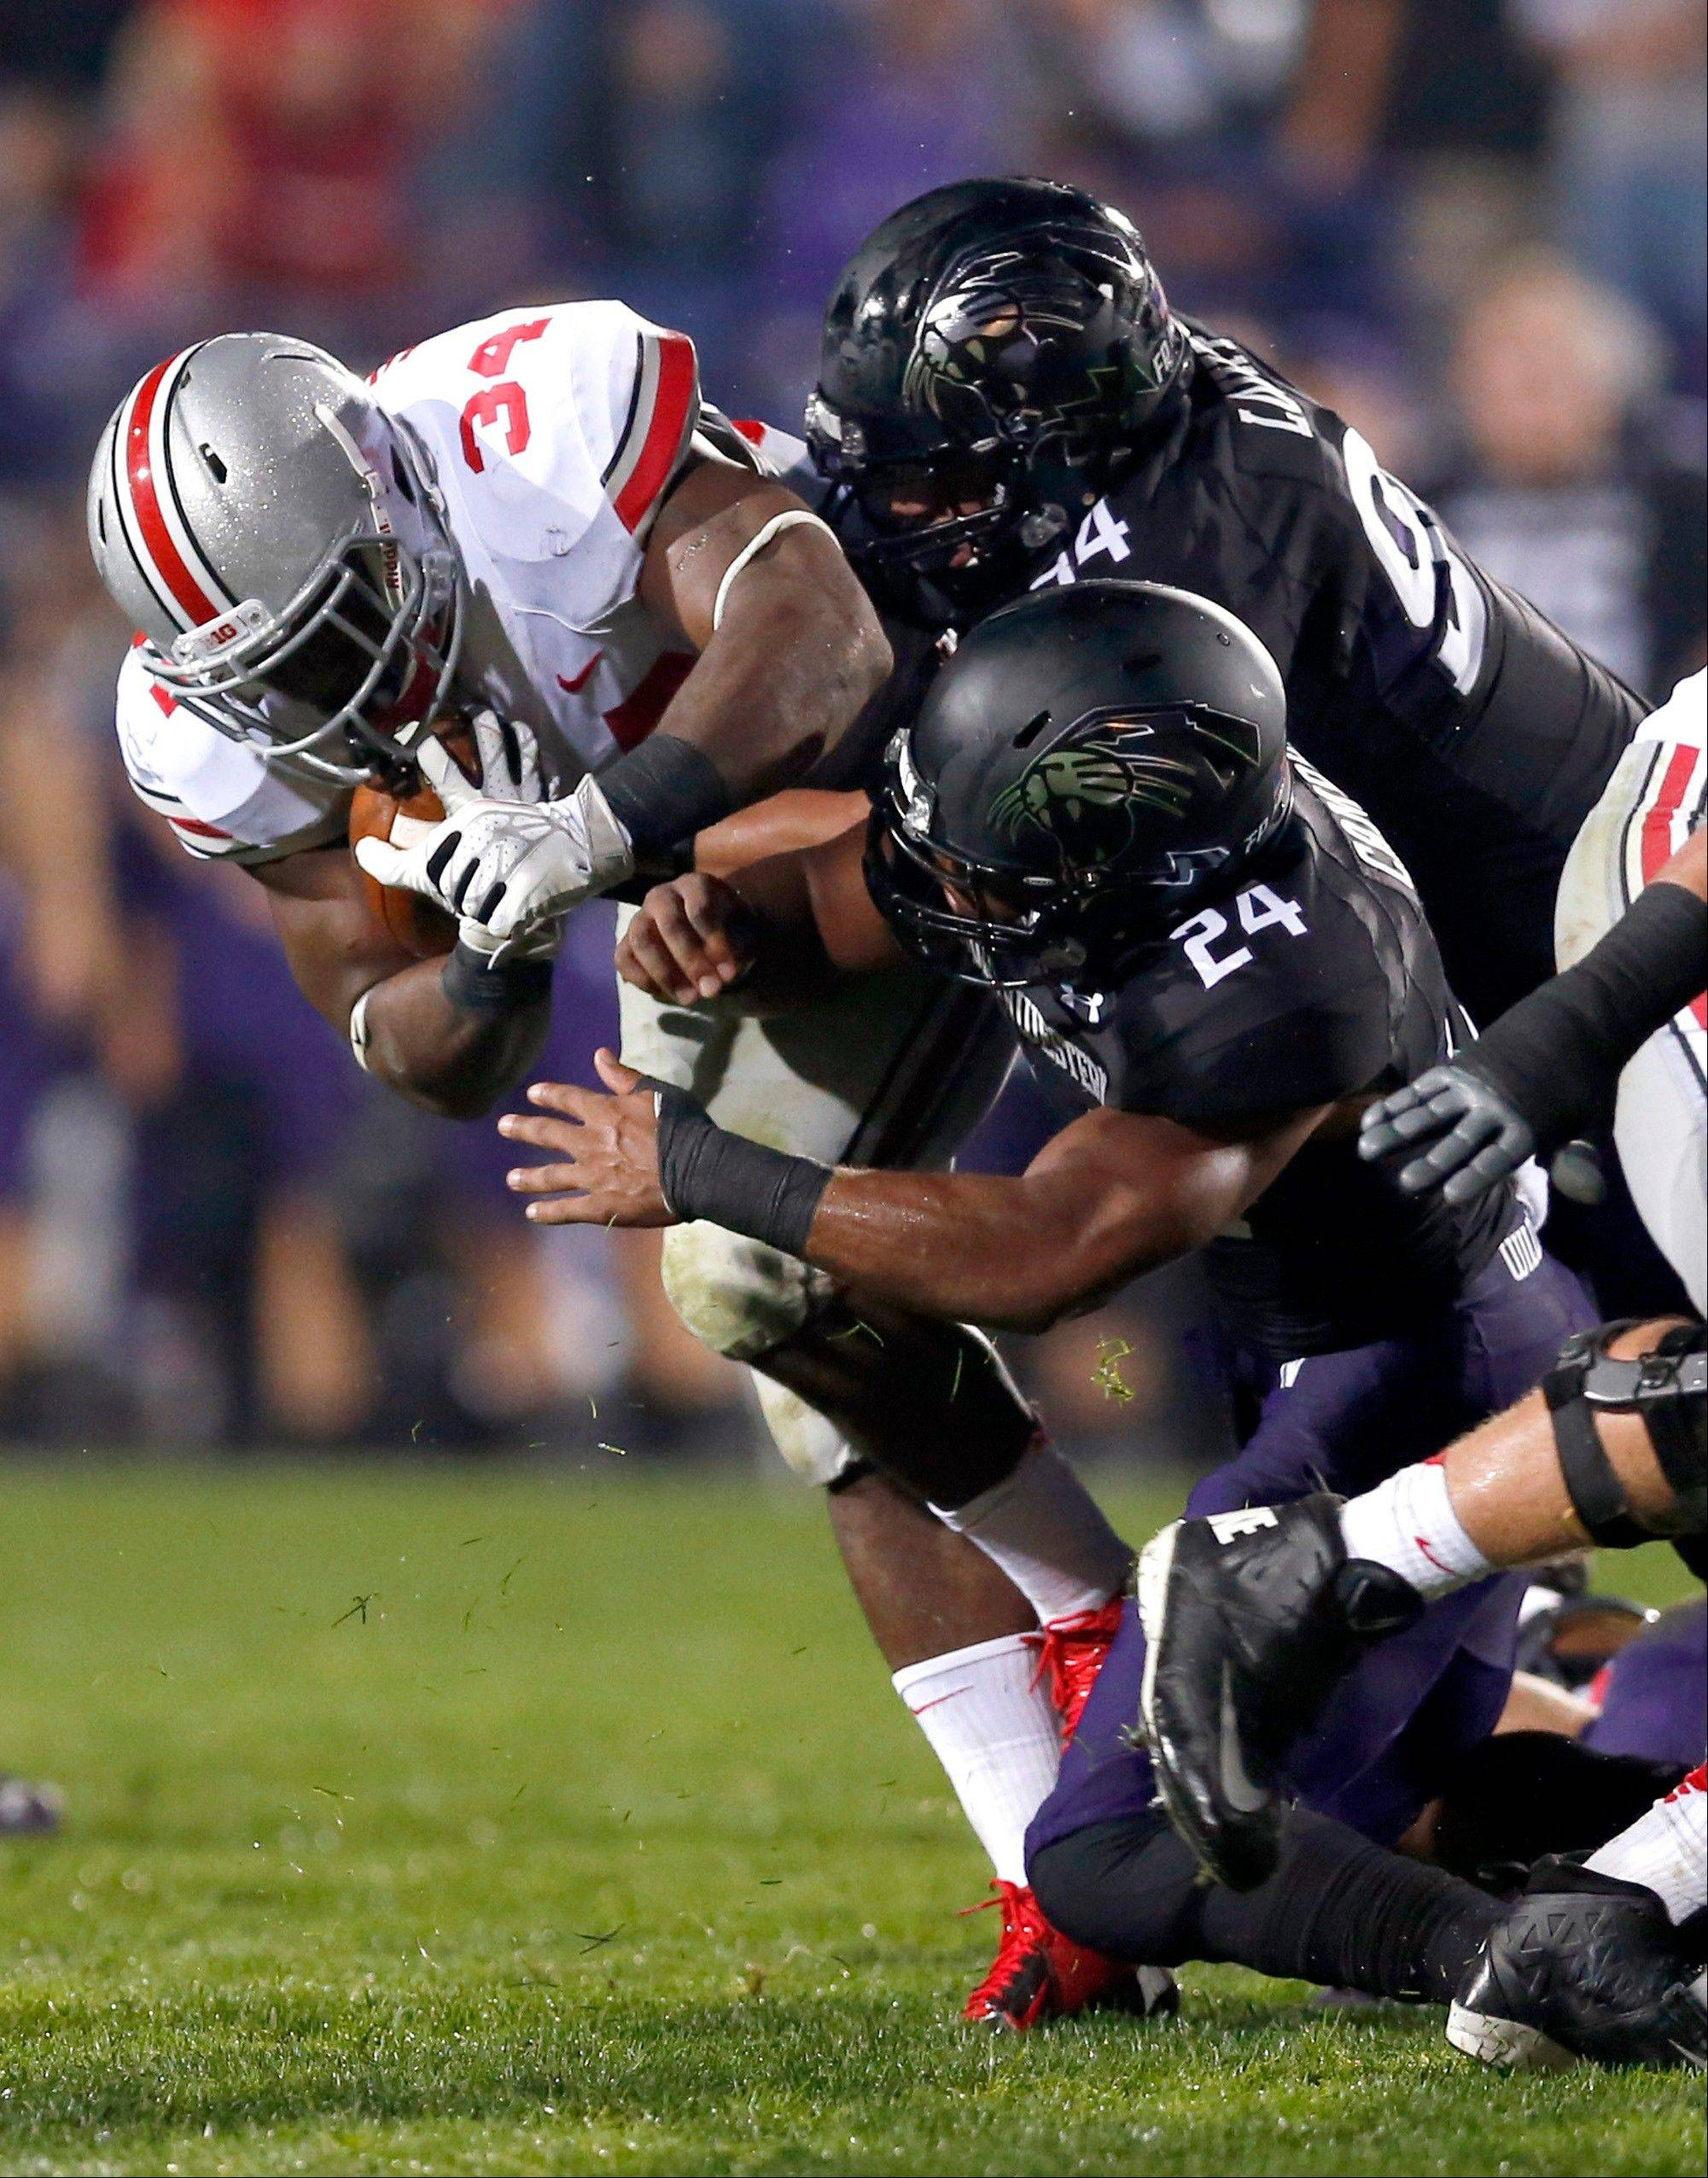 Ohio State running back Carlos Hyde (34) carries the ball and is tackled by Northwestern defensive lineman Dean Lowry (94) and safety Ibraheim Campbell during Saturday�s game in Evanston. Ohio State beat Northwestern 40-30.